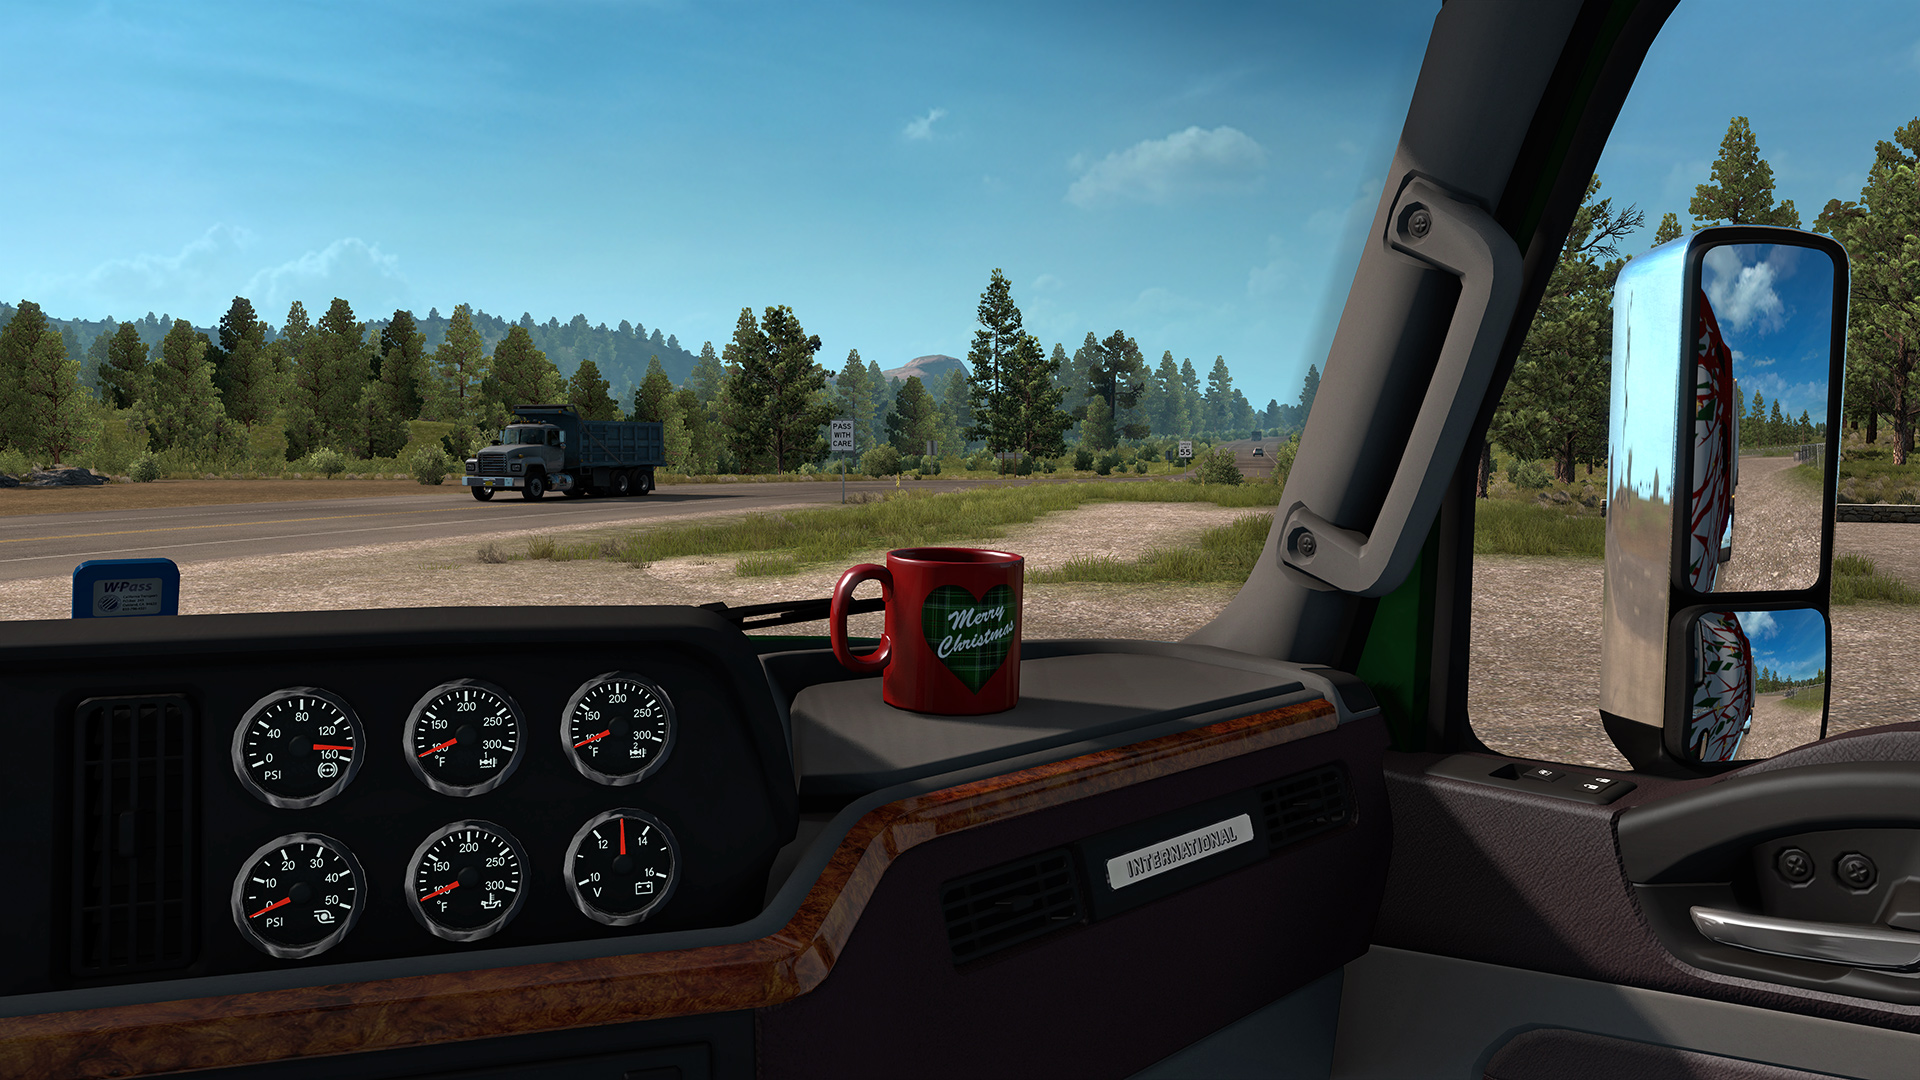 A Christmas-themed mug resting on the dashboard of a truck cab in Euro Truck Simulator 2.